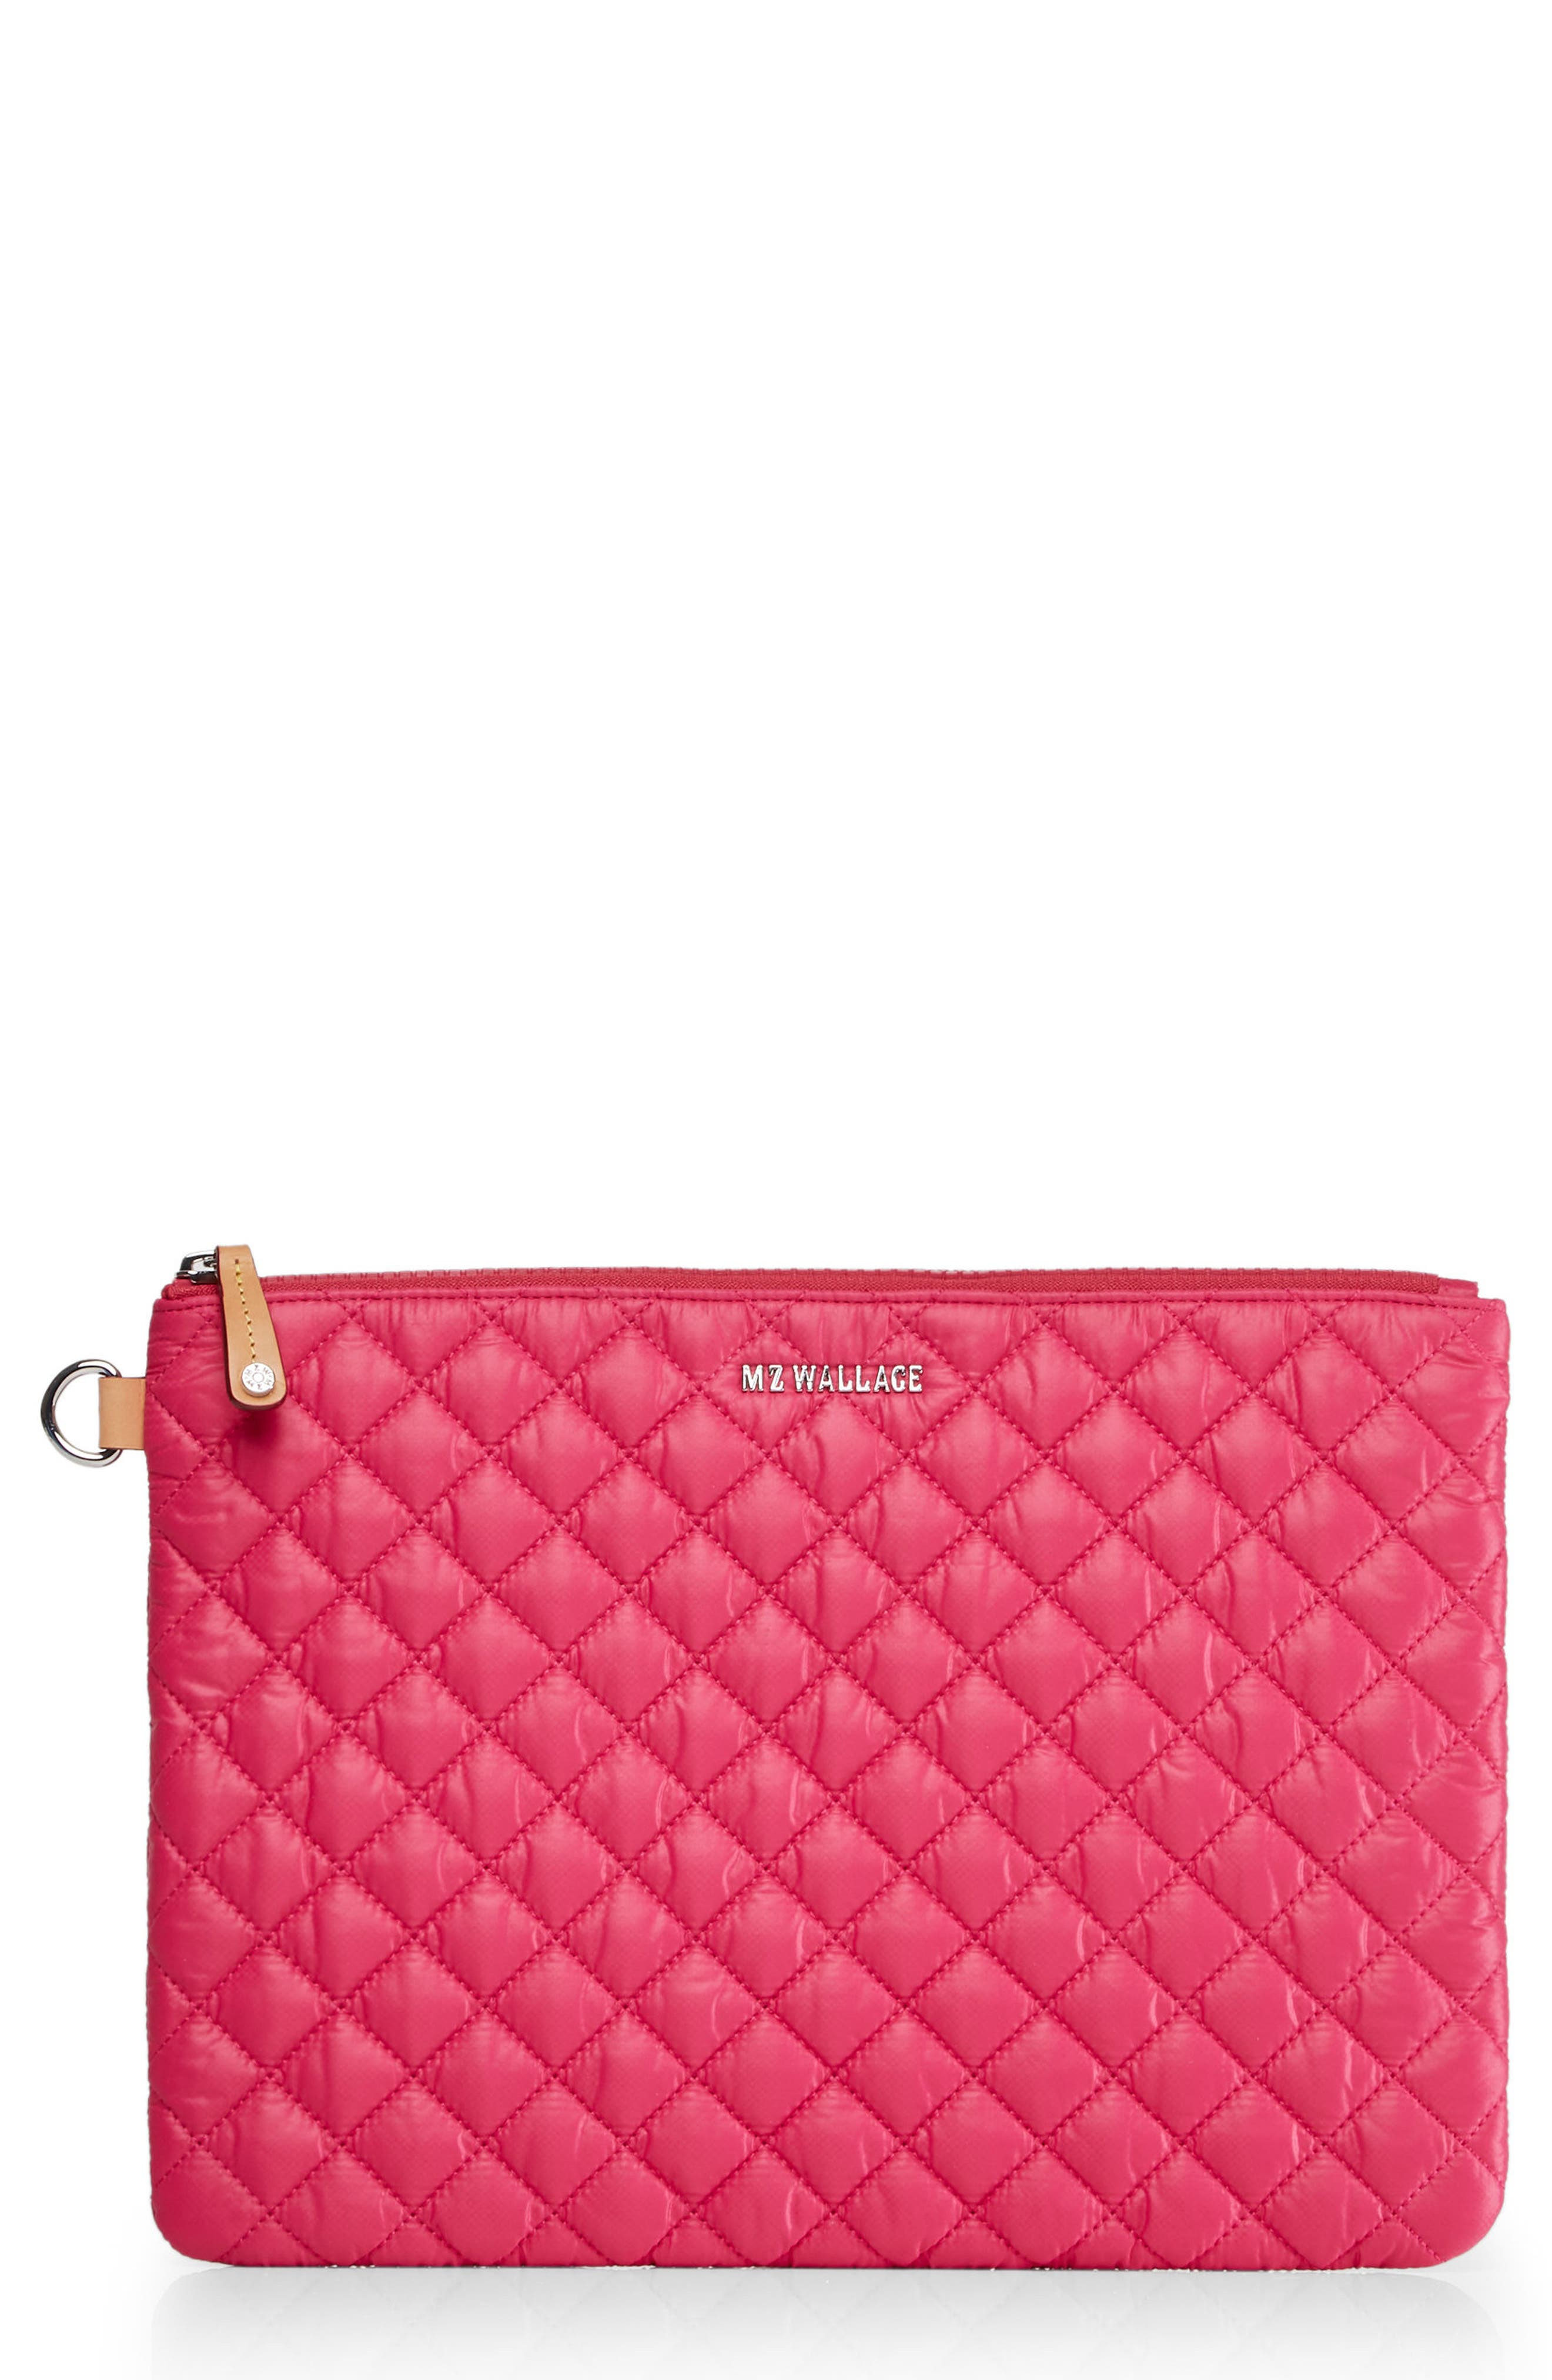 METRO POUCH - PINK